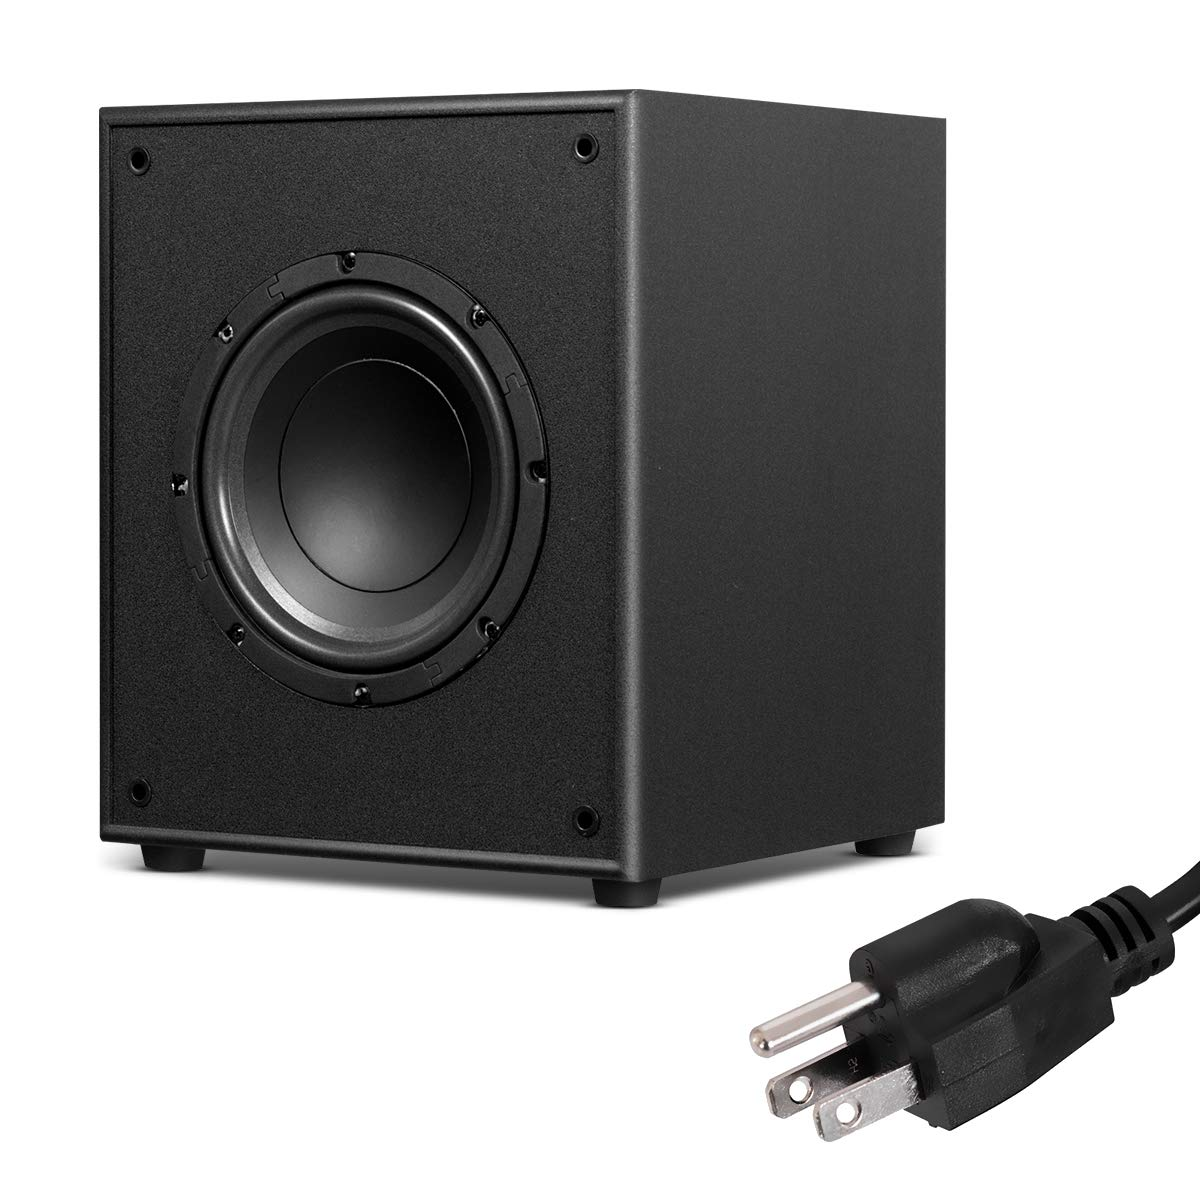 Sonart Active Subwoofer W/Front-Firing Woofer for Surround Sound HD Home Theater Music, Black (8'' 200W) by Sonart